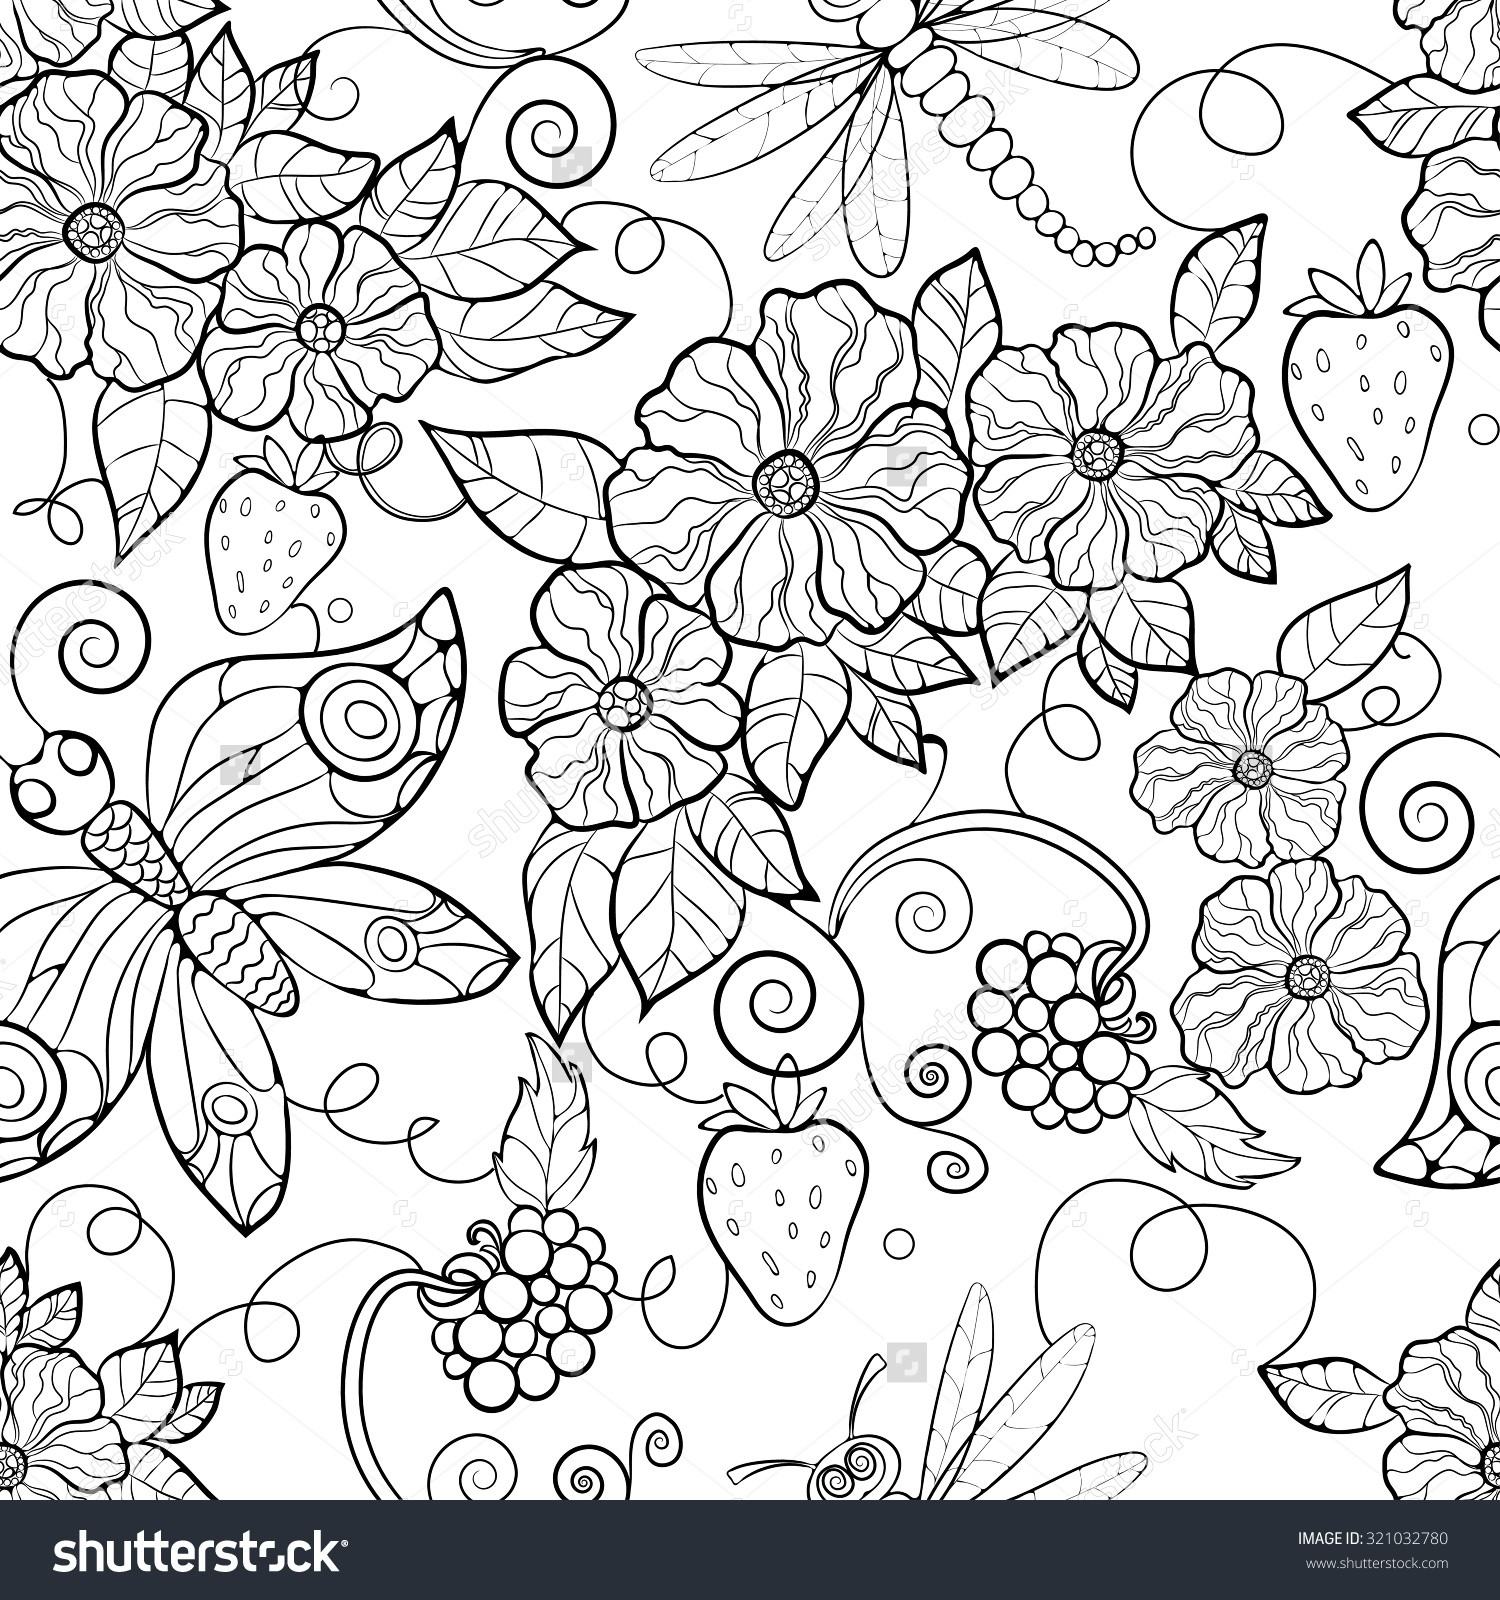 Flower Pattern Coloring Pages | Paginone.biz regarding Detailed Flower Pattern Coloring Pages 27079